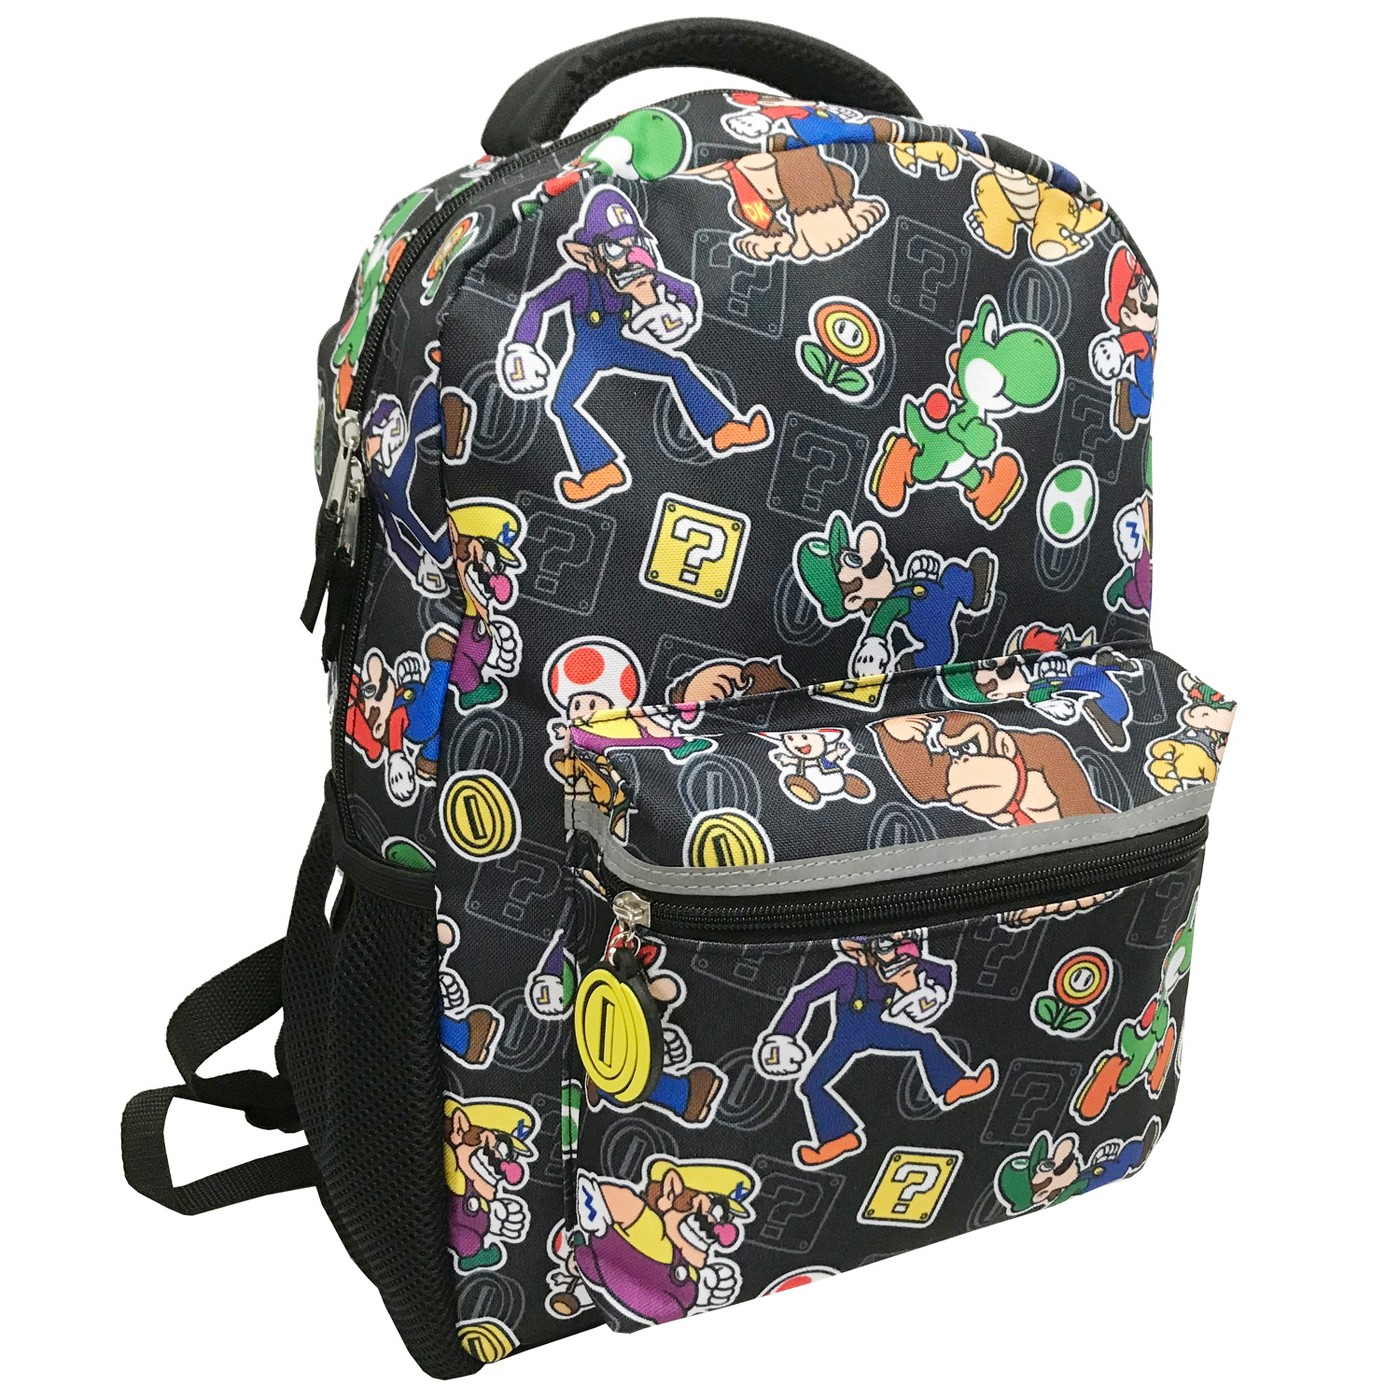 These cool backpacks for kids are sure to make yours smile!